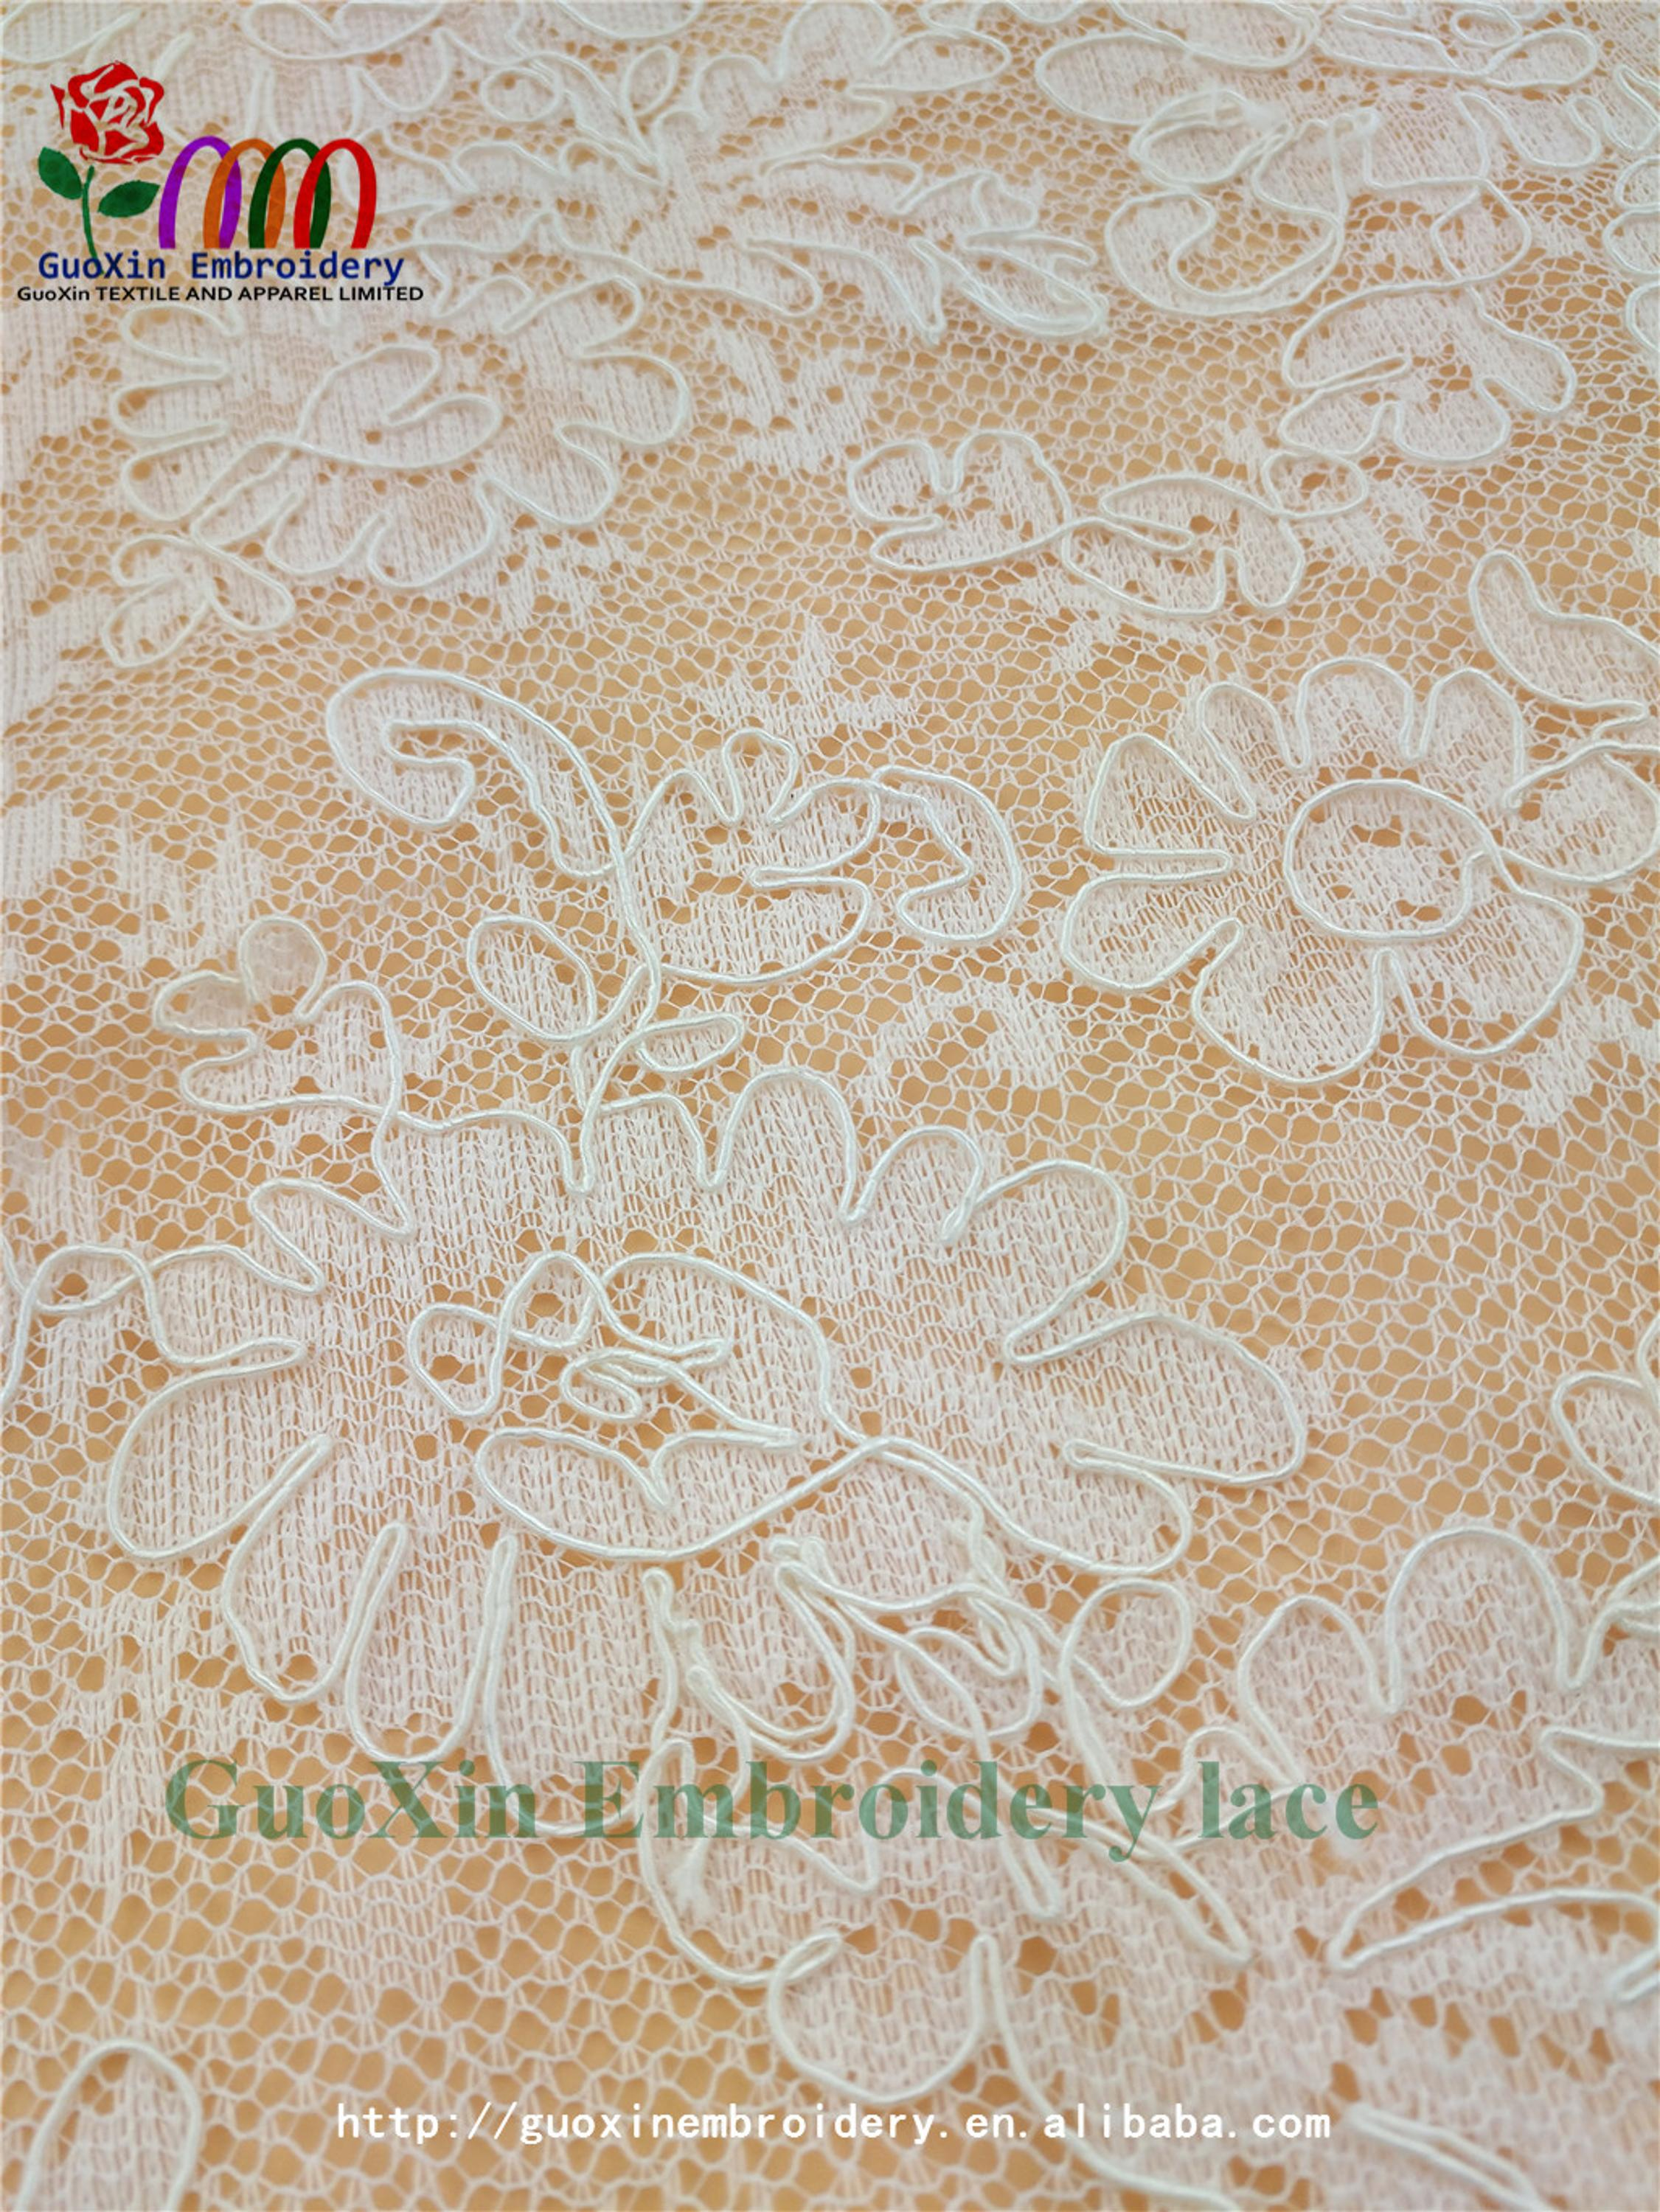 china manufacturer french lace embroidery fabric ivory bridal lace with cording (6).jpg